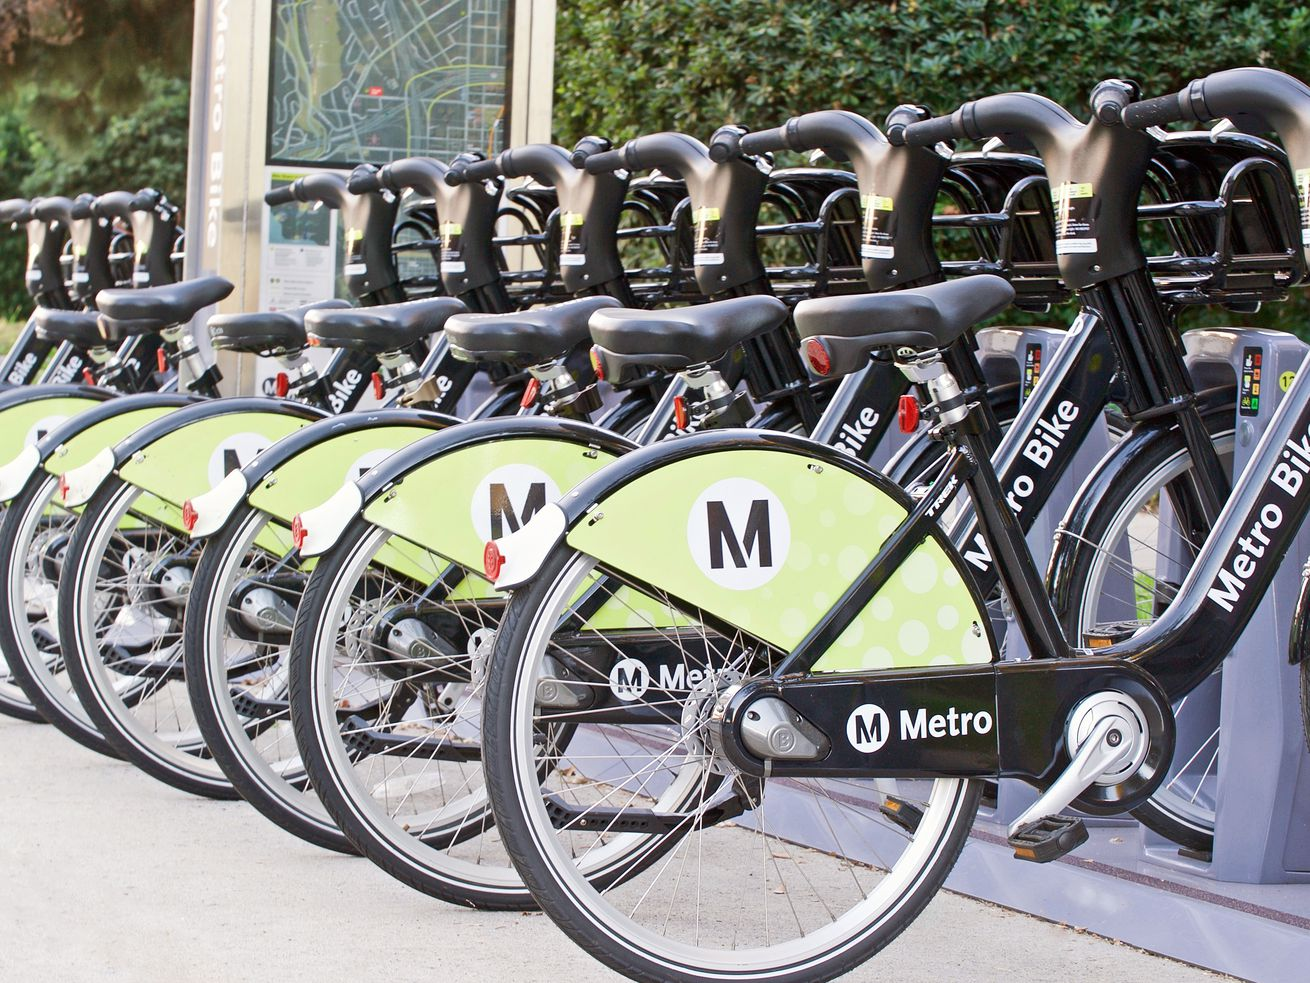 Staffers say the city only has money to keep the bike service running until the end of the month.